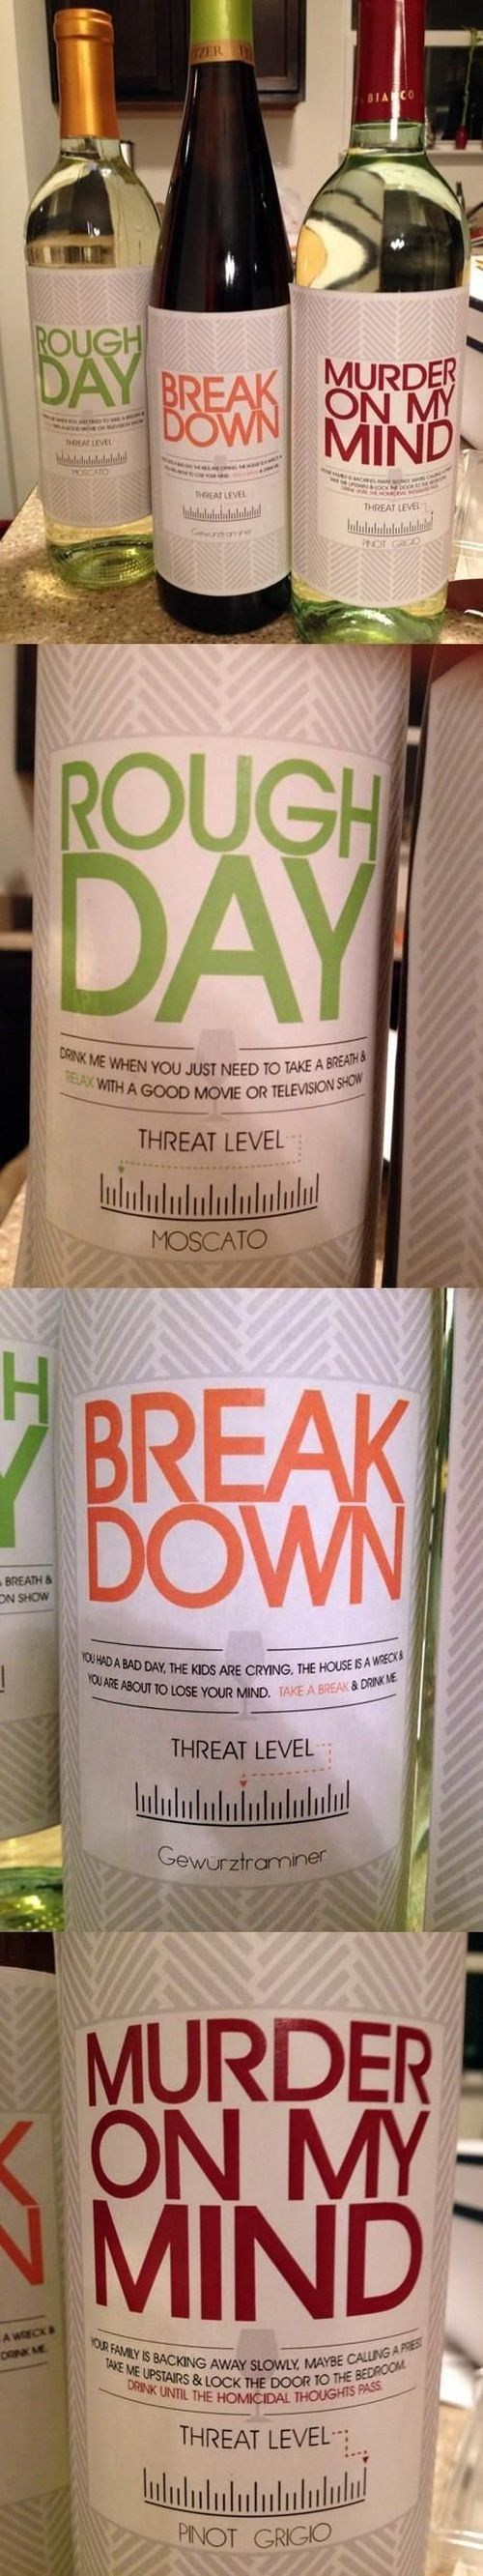 labels,wine,threat level,funny,after 12,g rated